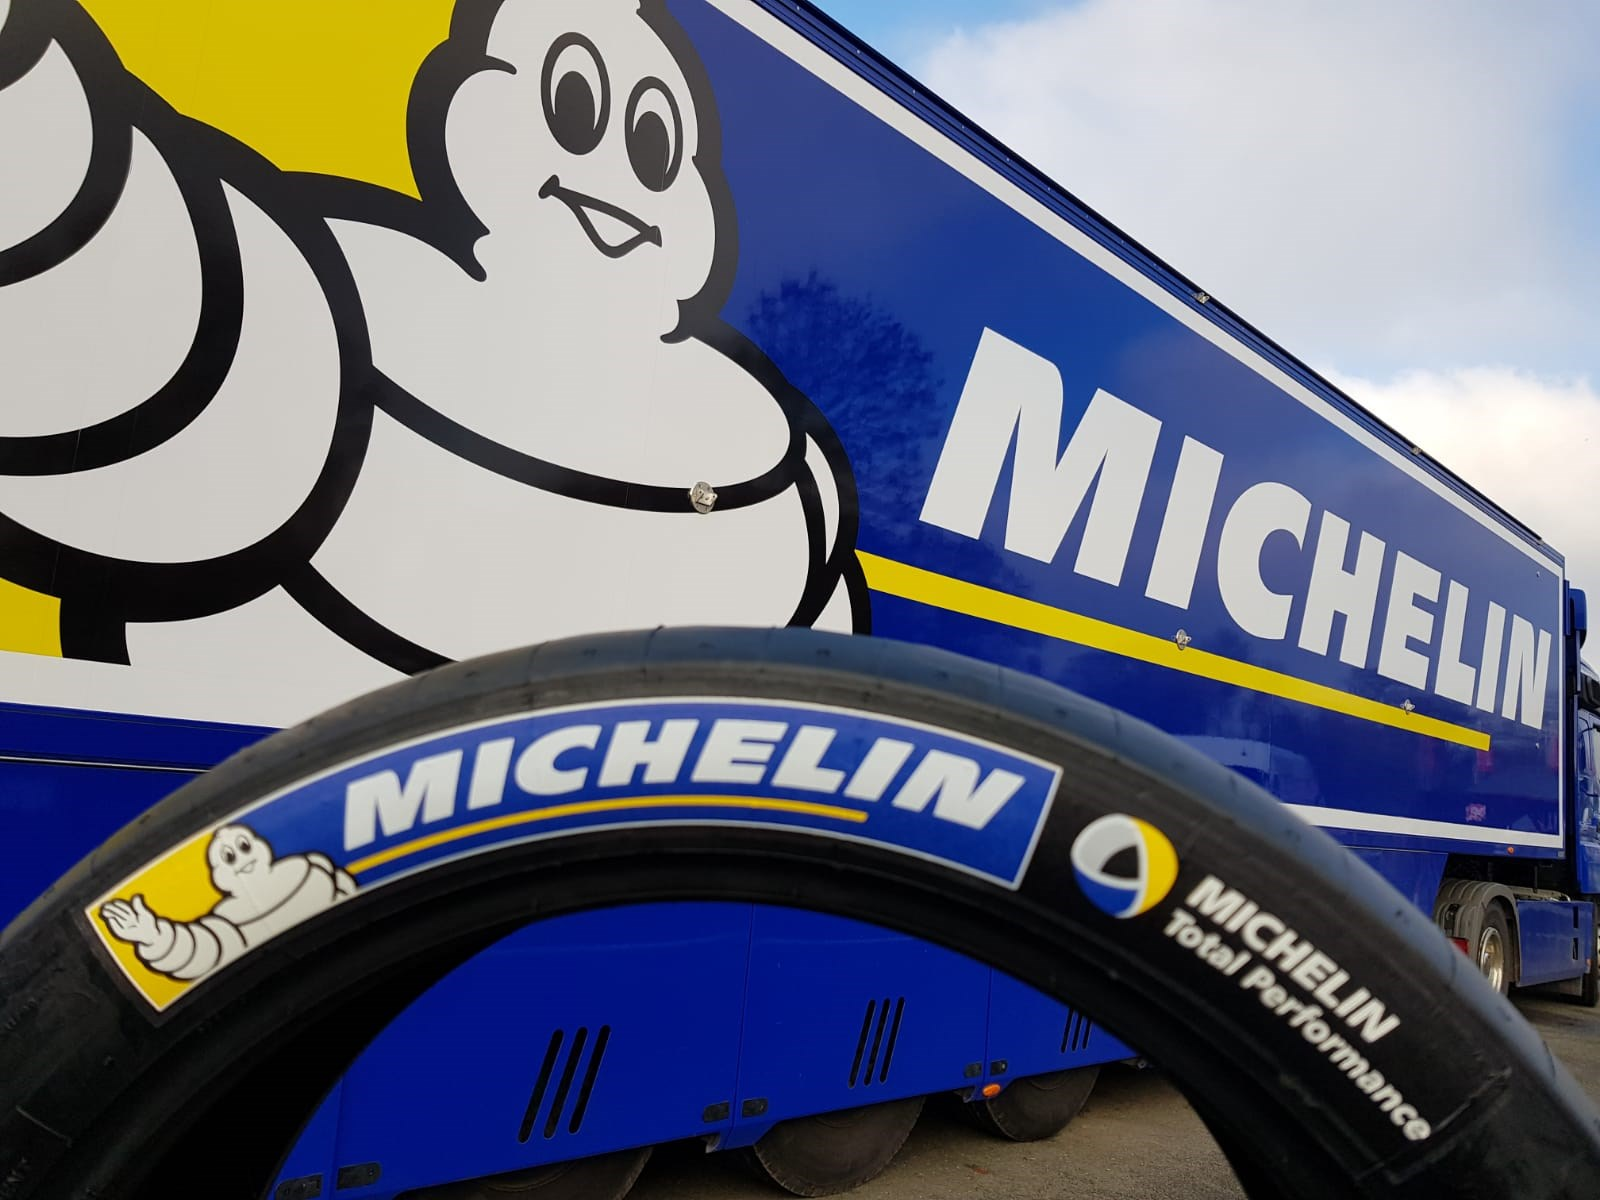 MSVR News - MICHELIN SIGNS UP FOR 2019-20 MSNCRC SEASON